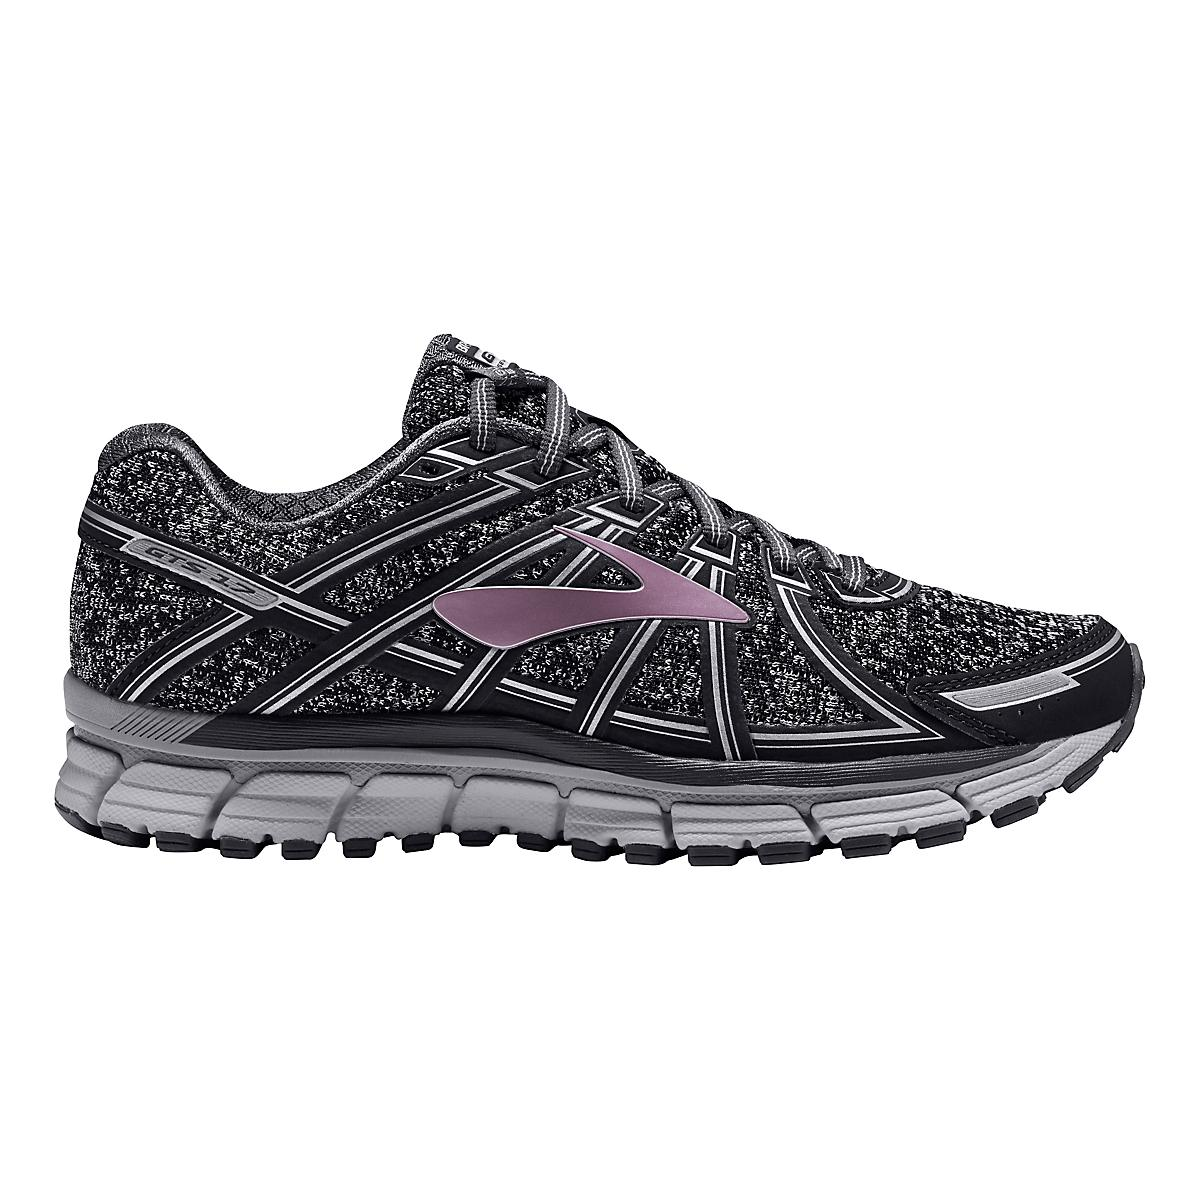 2f018e8f1ec12 Womens Brooks Adrenaline GTS 17 Running Shoe at Road Runner Sports